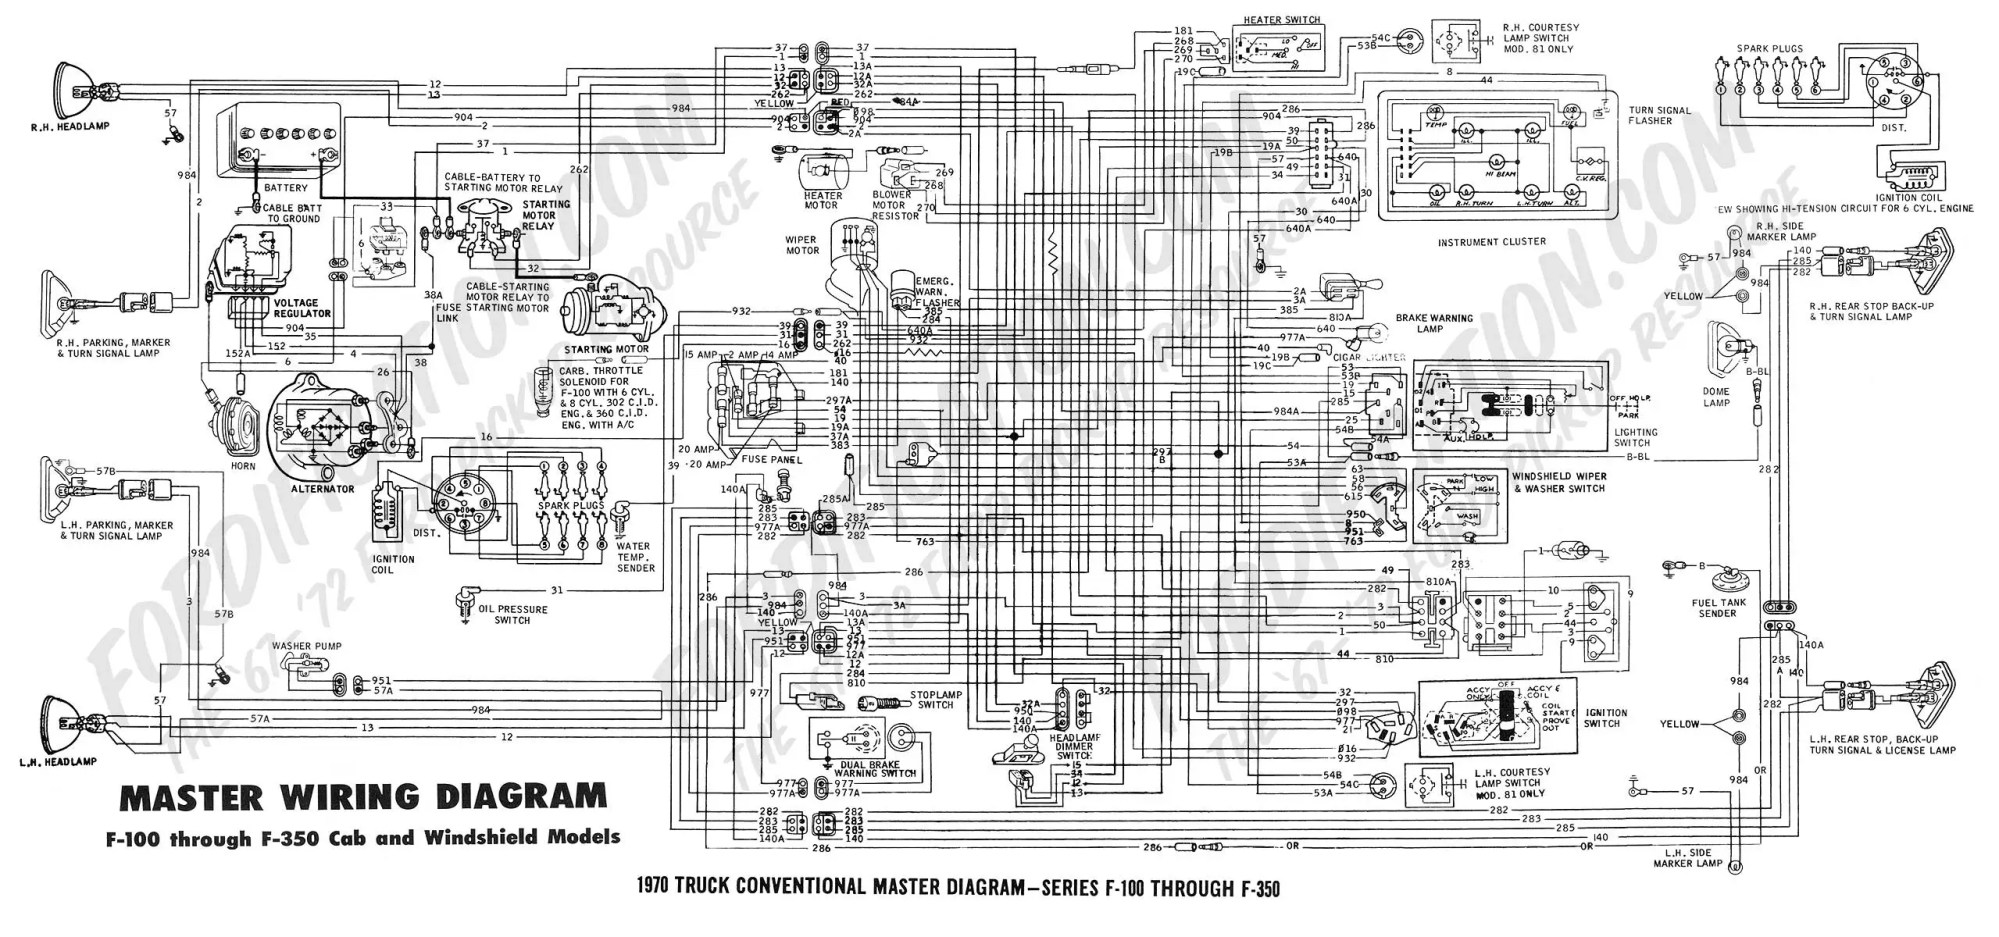 hight resolution of 1970 f100 wiring diagram wiring diagram blog 1956 ford f100 wiring harness ford f100 wiring